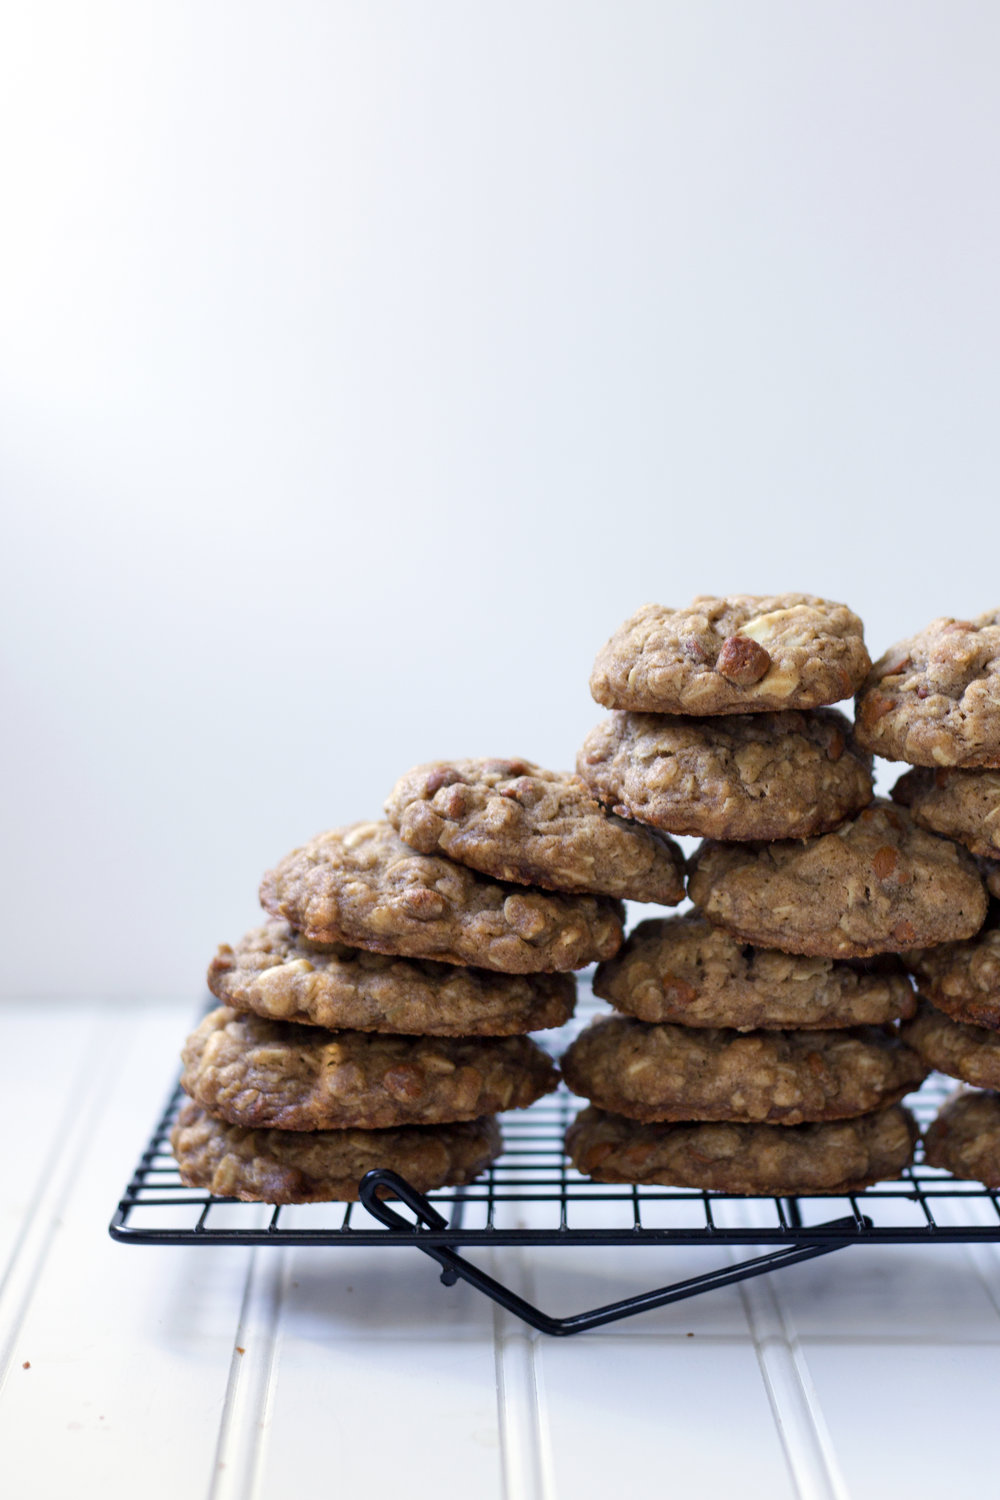 Cinnamon & White Chocolate Oatmeal Cookies. Unusuallylovely.com